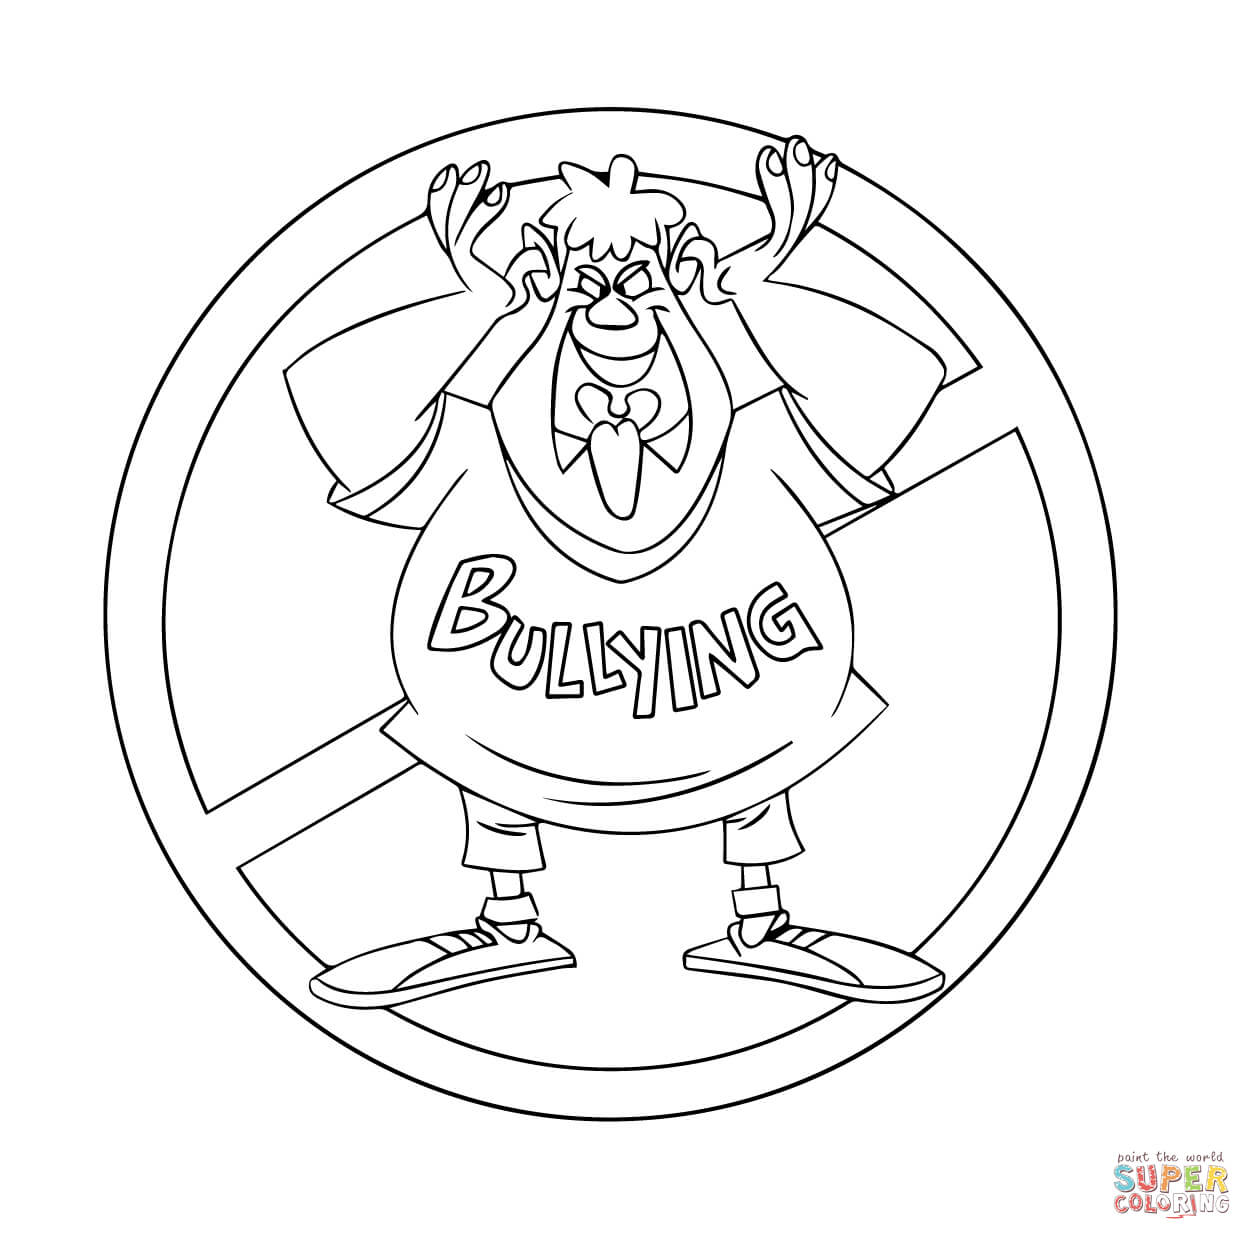 No To Bullying Troll Coloring Page Free Printable Coloring Pages